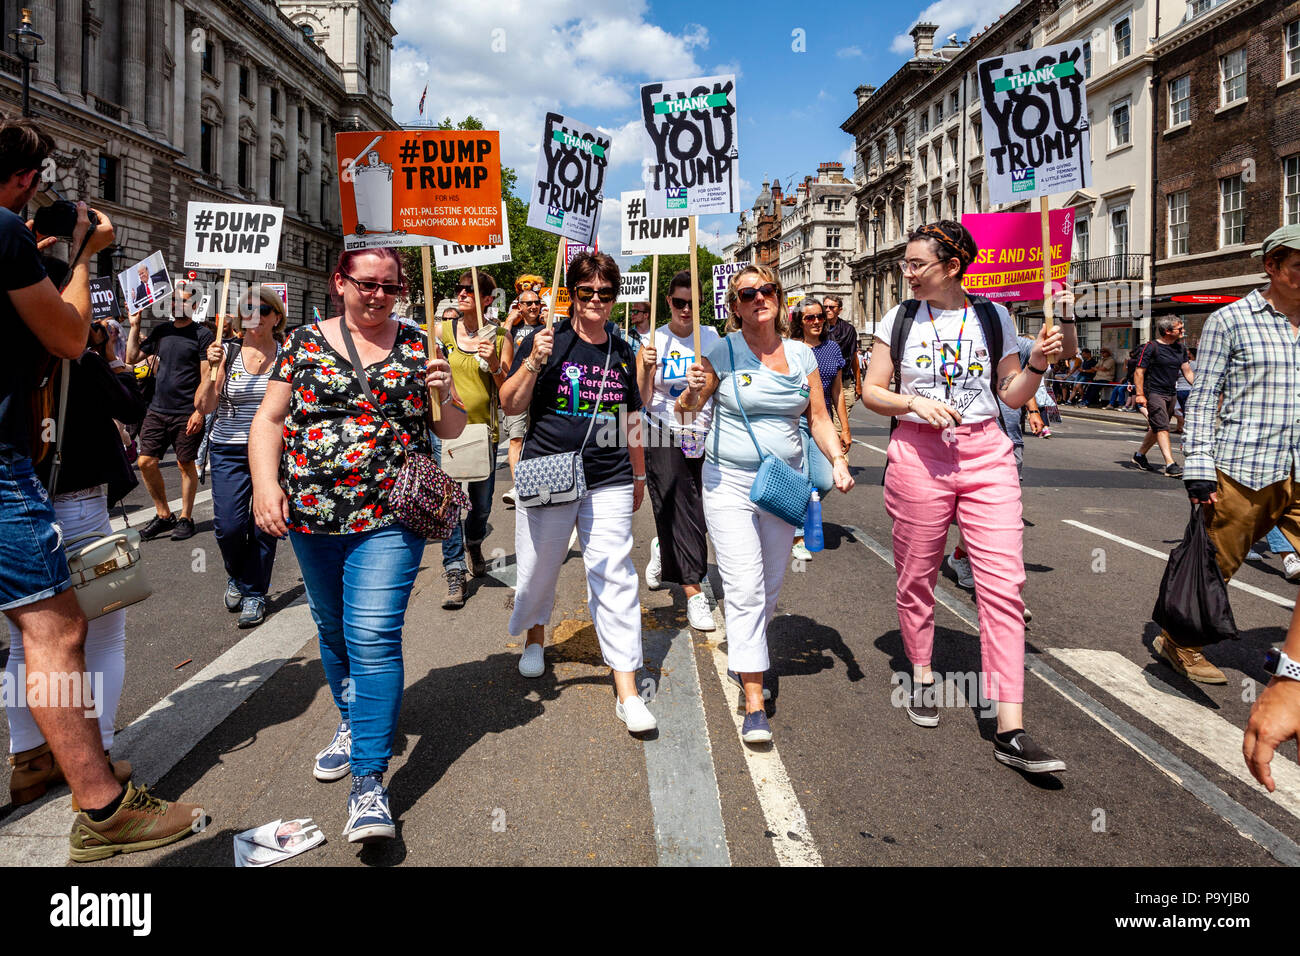 Anti Trump Protestors March Down Whitehall In Protest At The Visit To The UK of US President Donald Trump, London, England - Stock Image